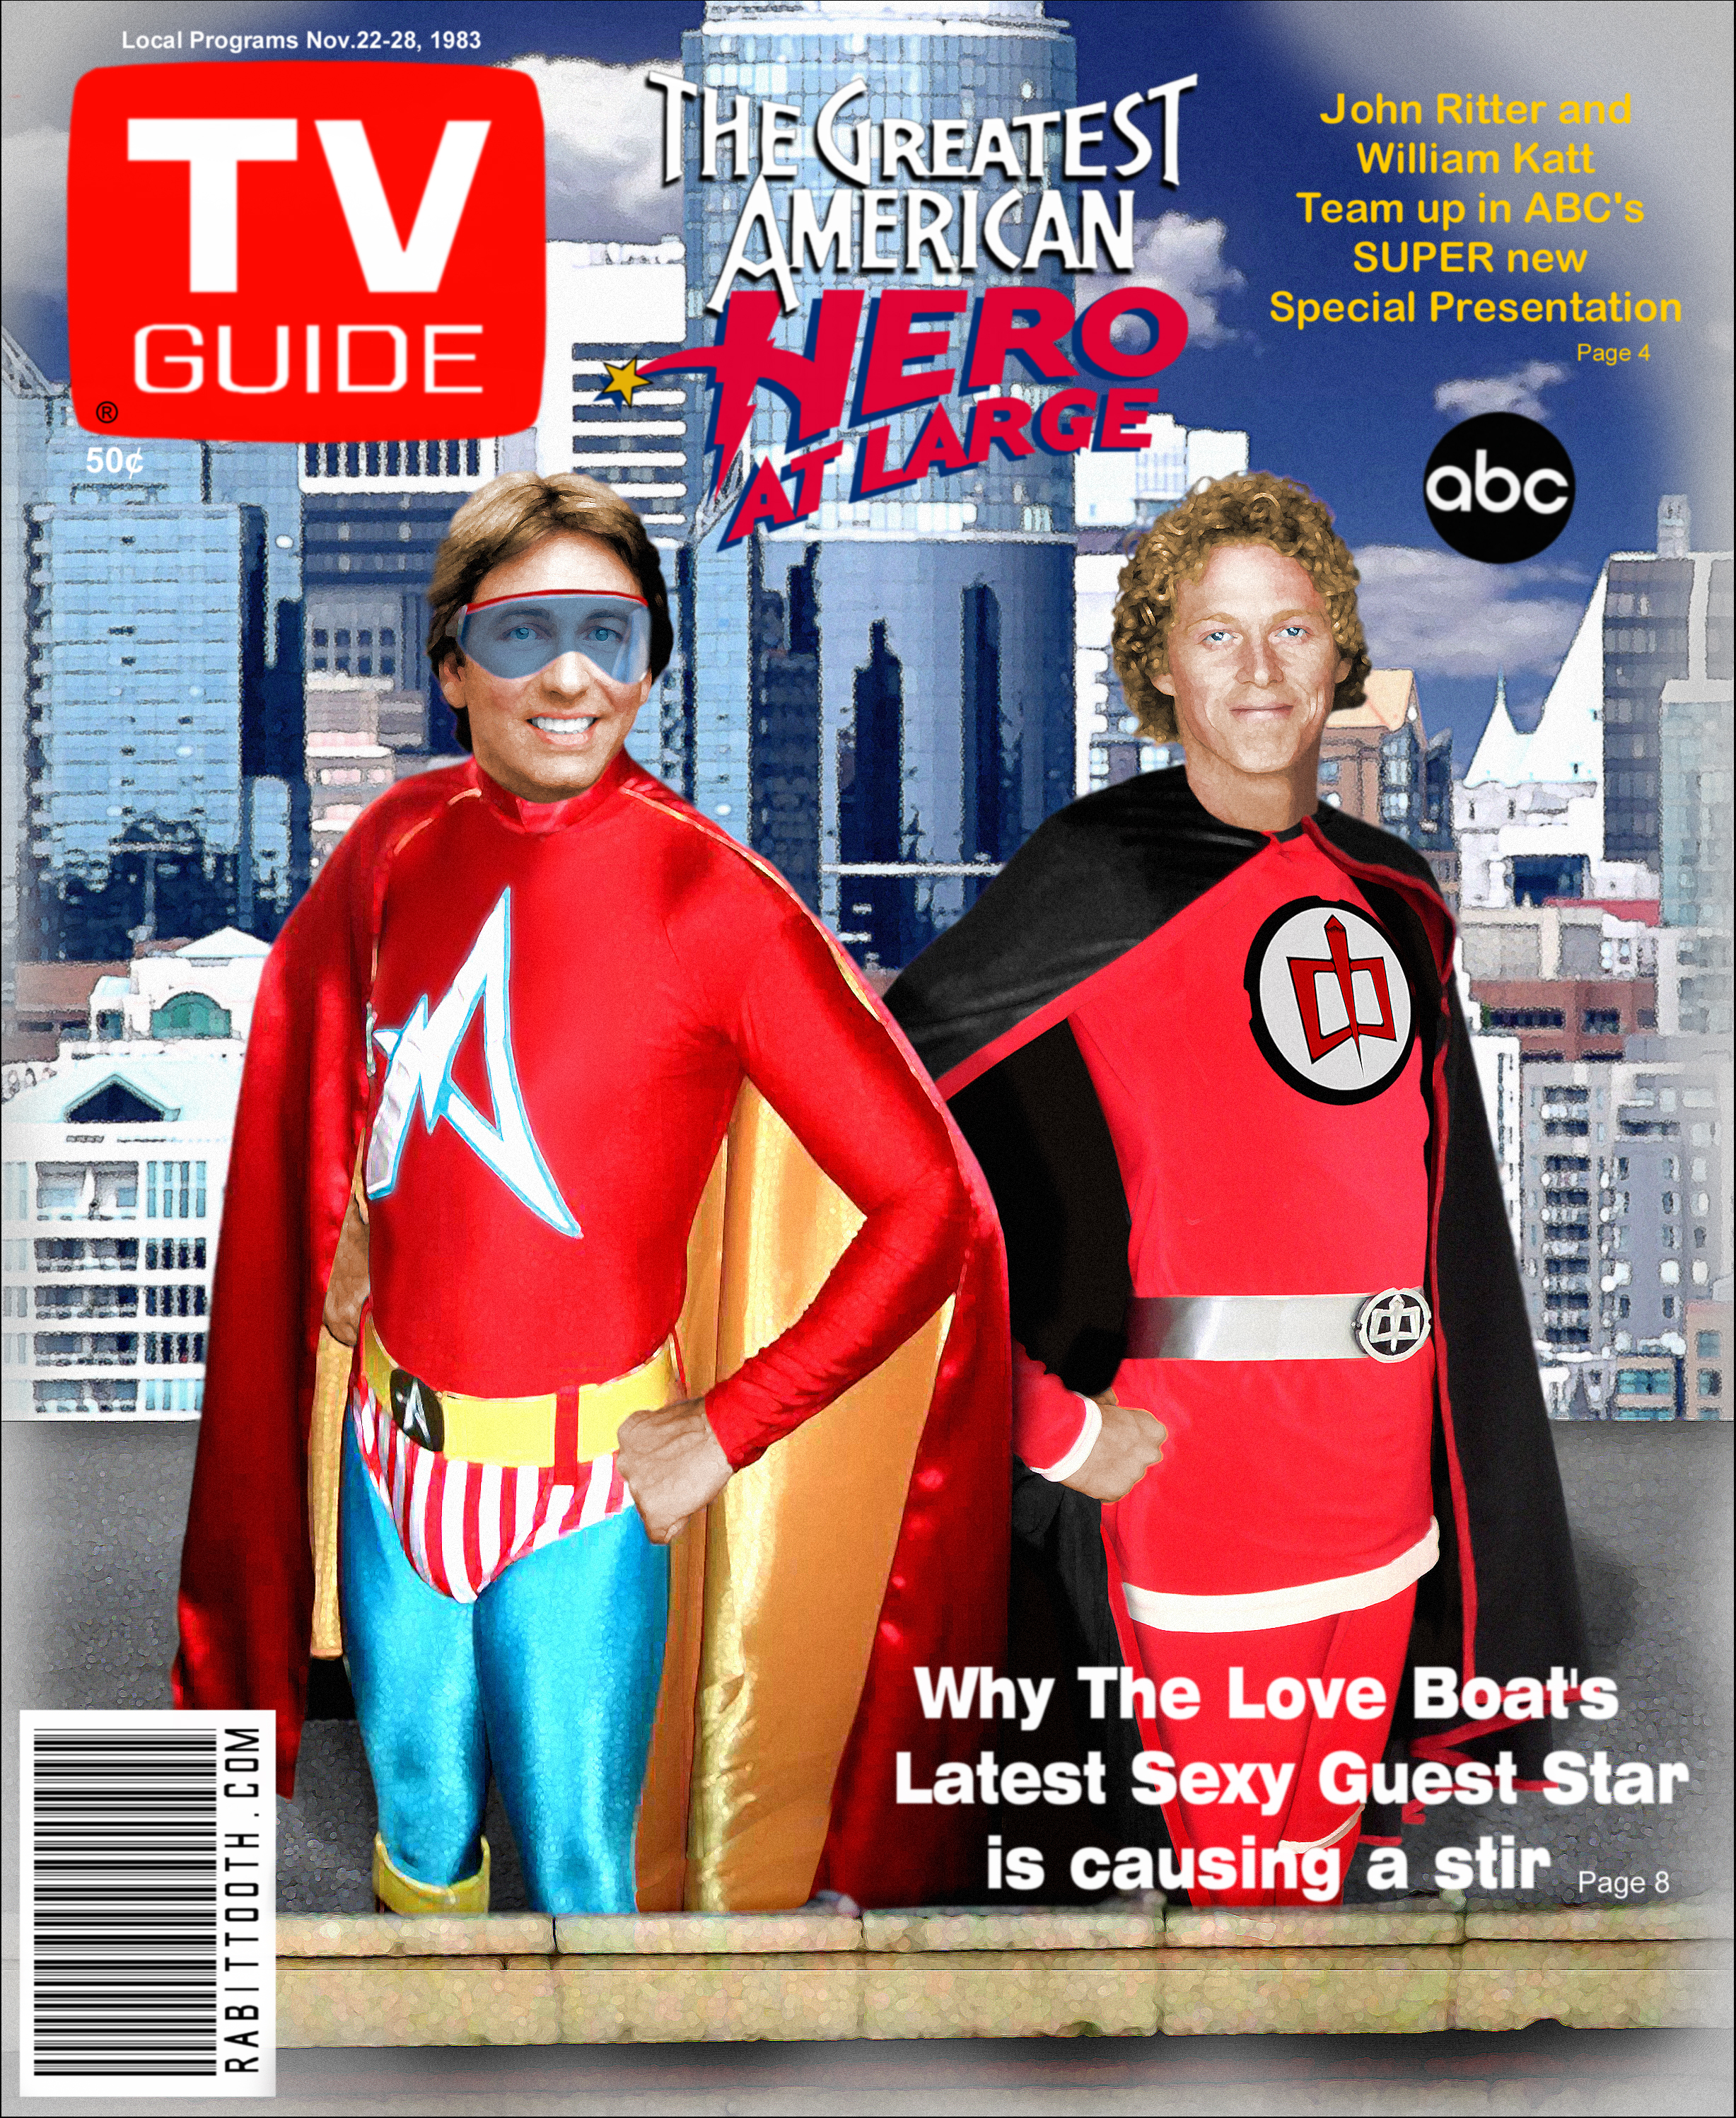 Greatest American Hero at Large TV Guide (CLEAN) by Rabittooth